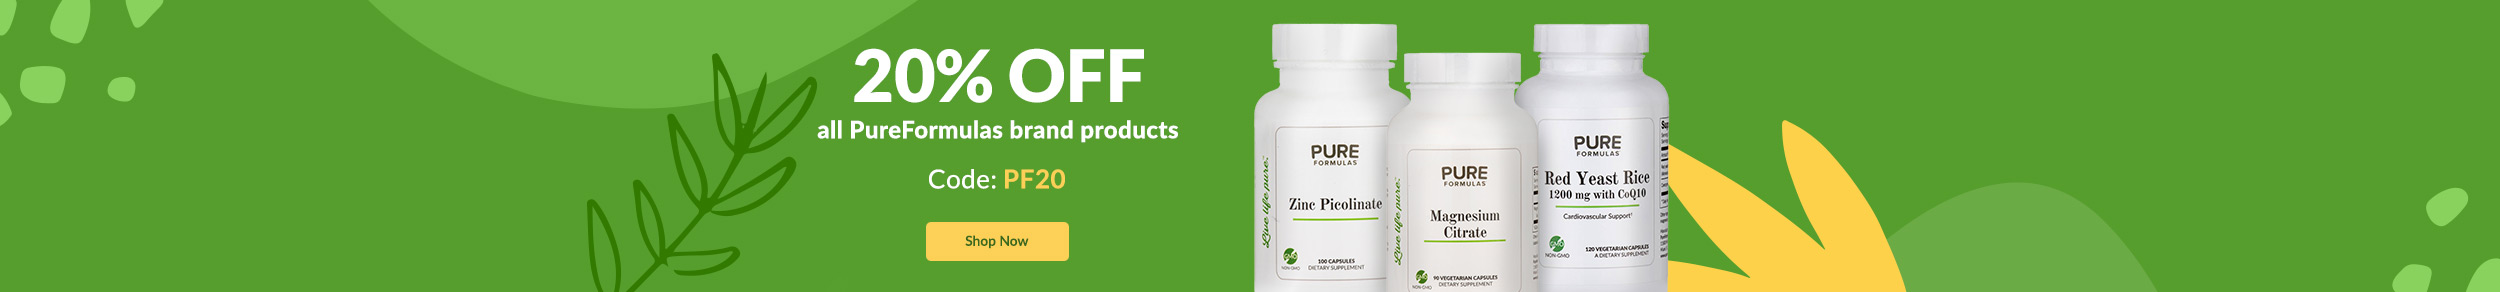 20% OFF all PureFormulas brand products. Code: PF20. SHOP NOW!